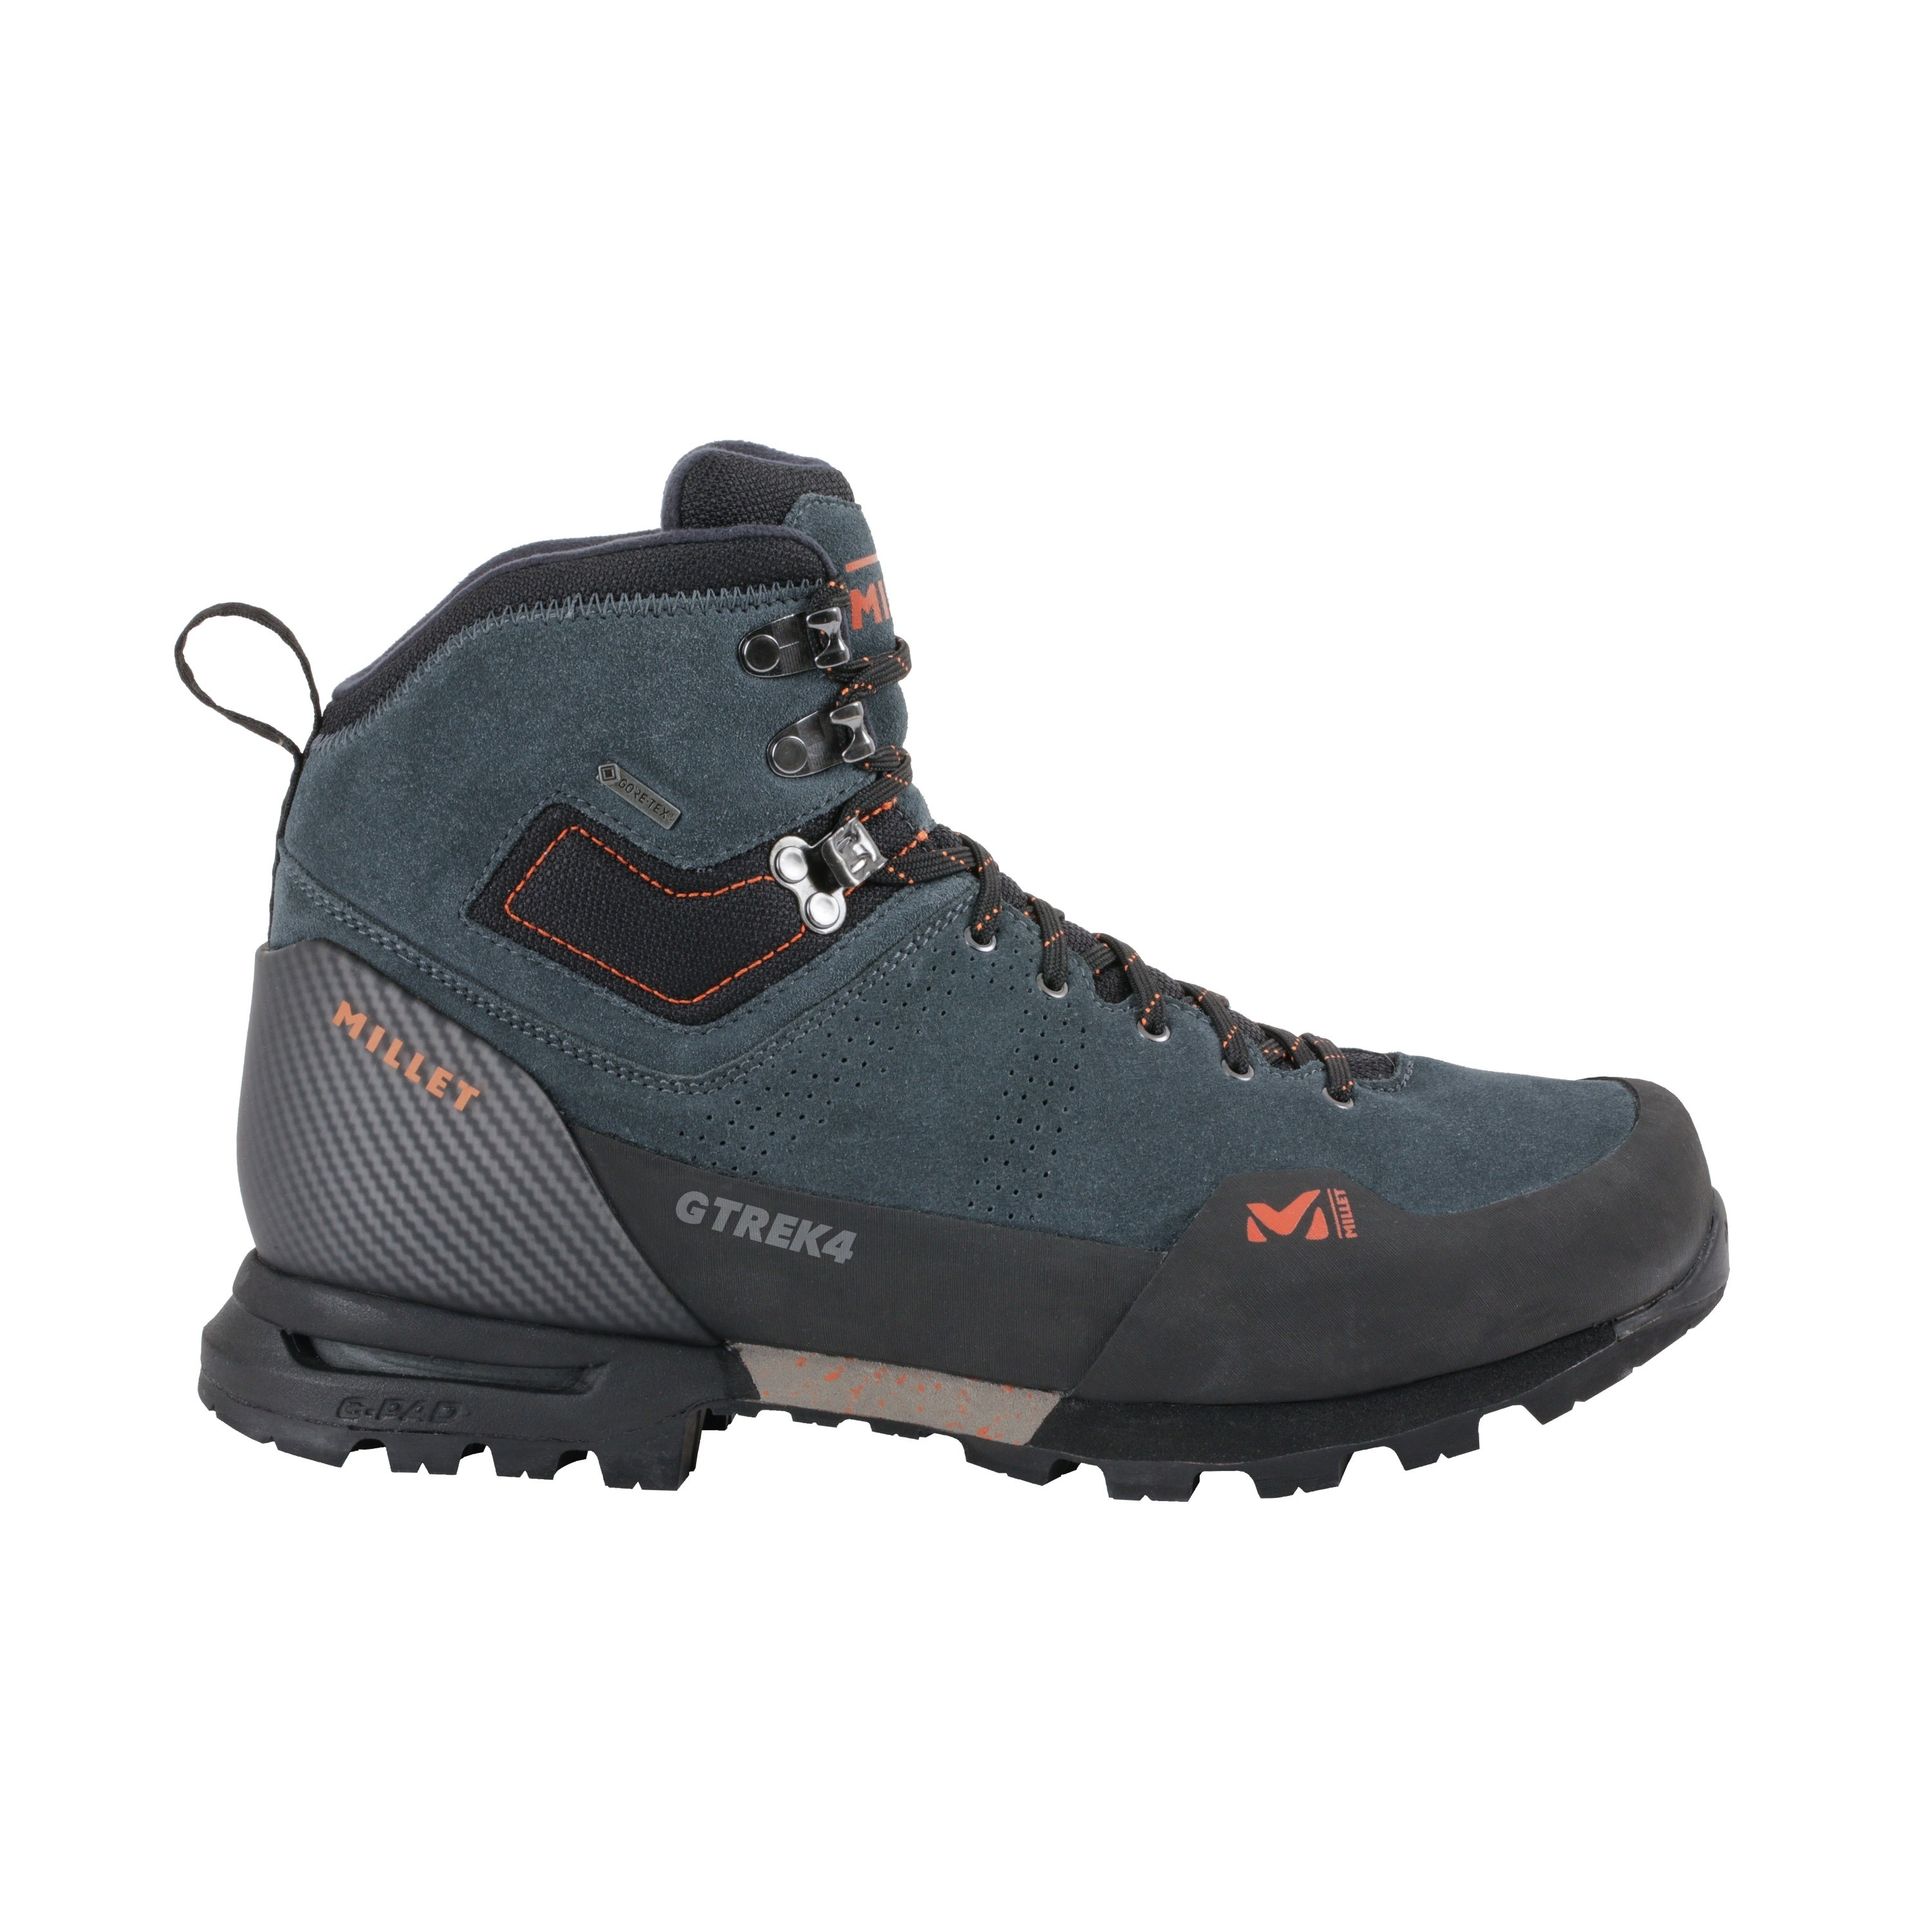 G TREK 4 GORETEX M